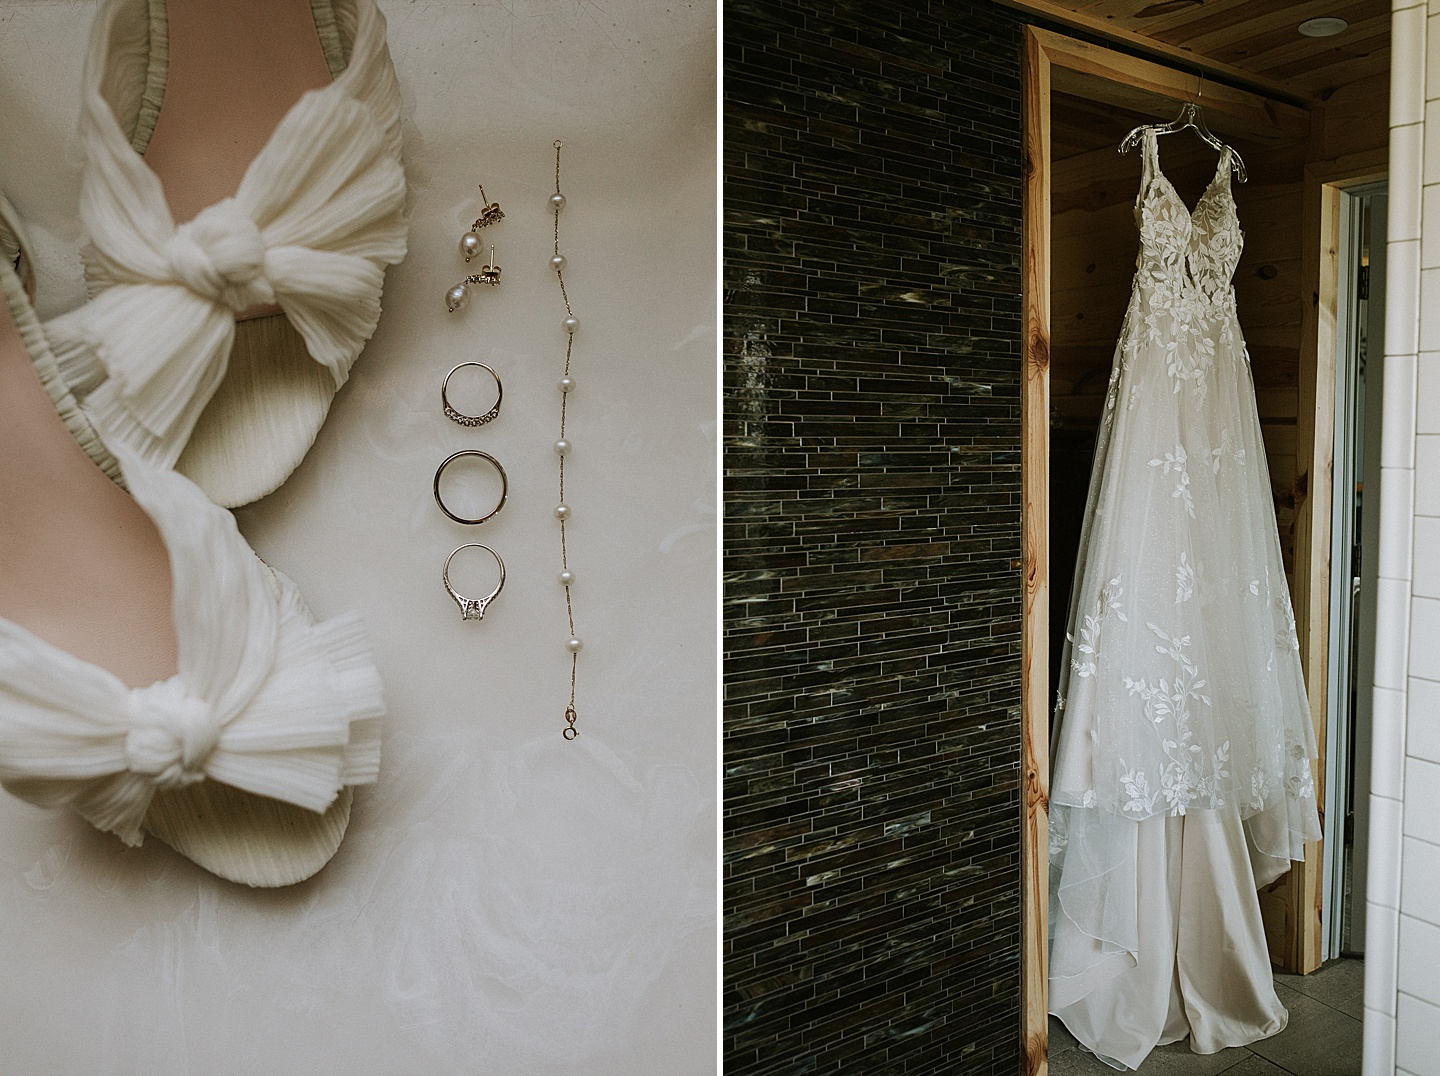 Dress and shoe details at wedding